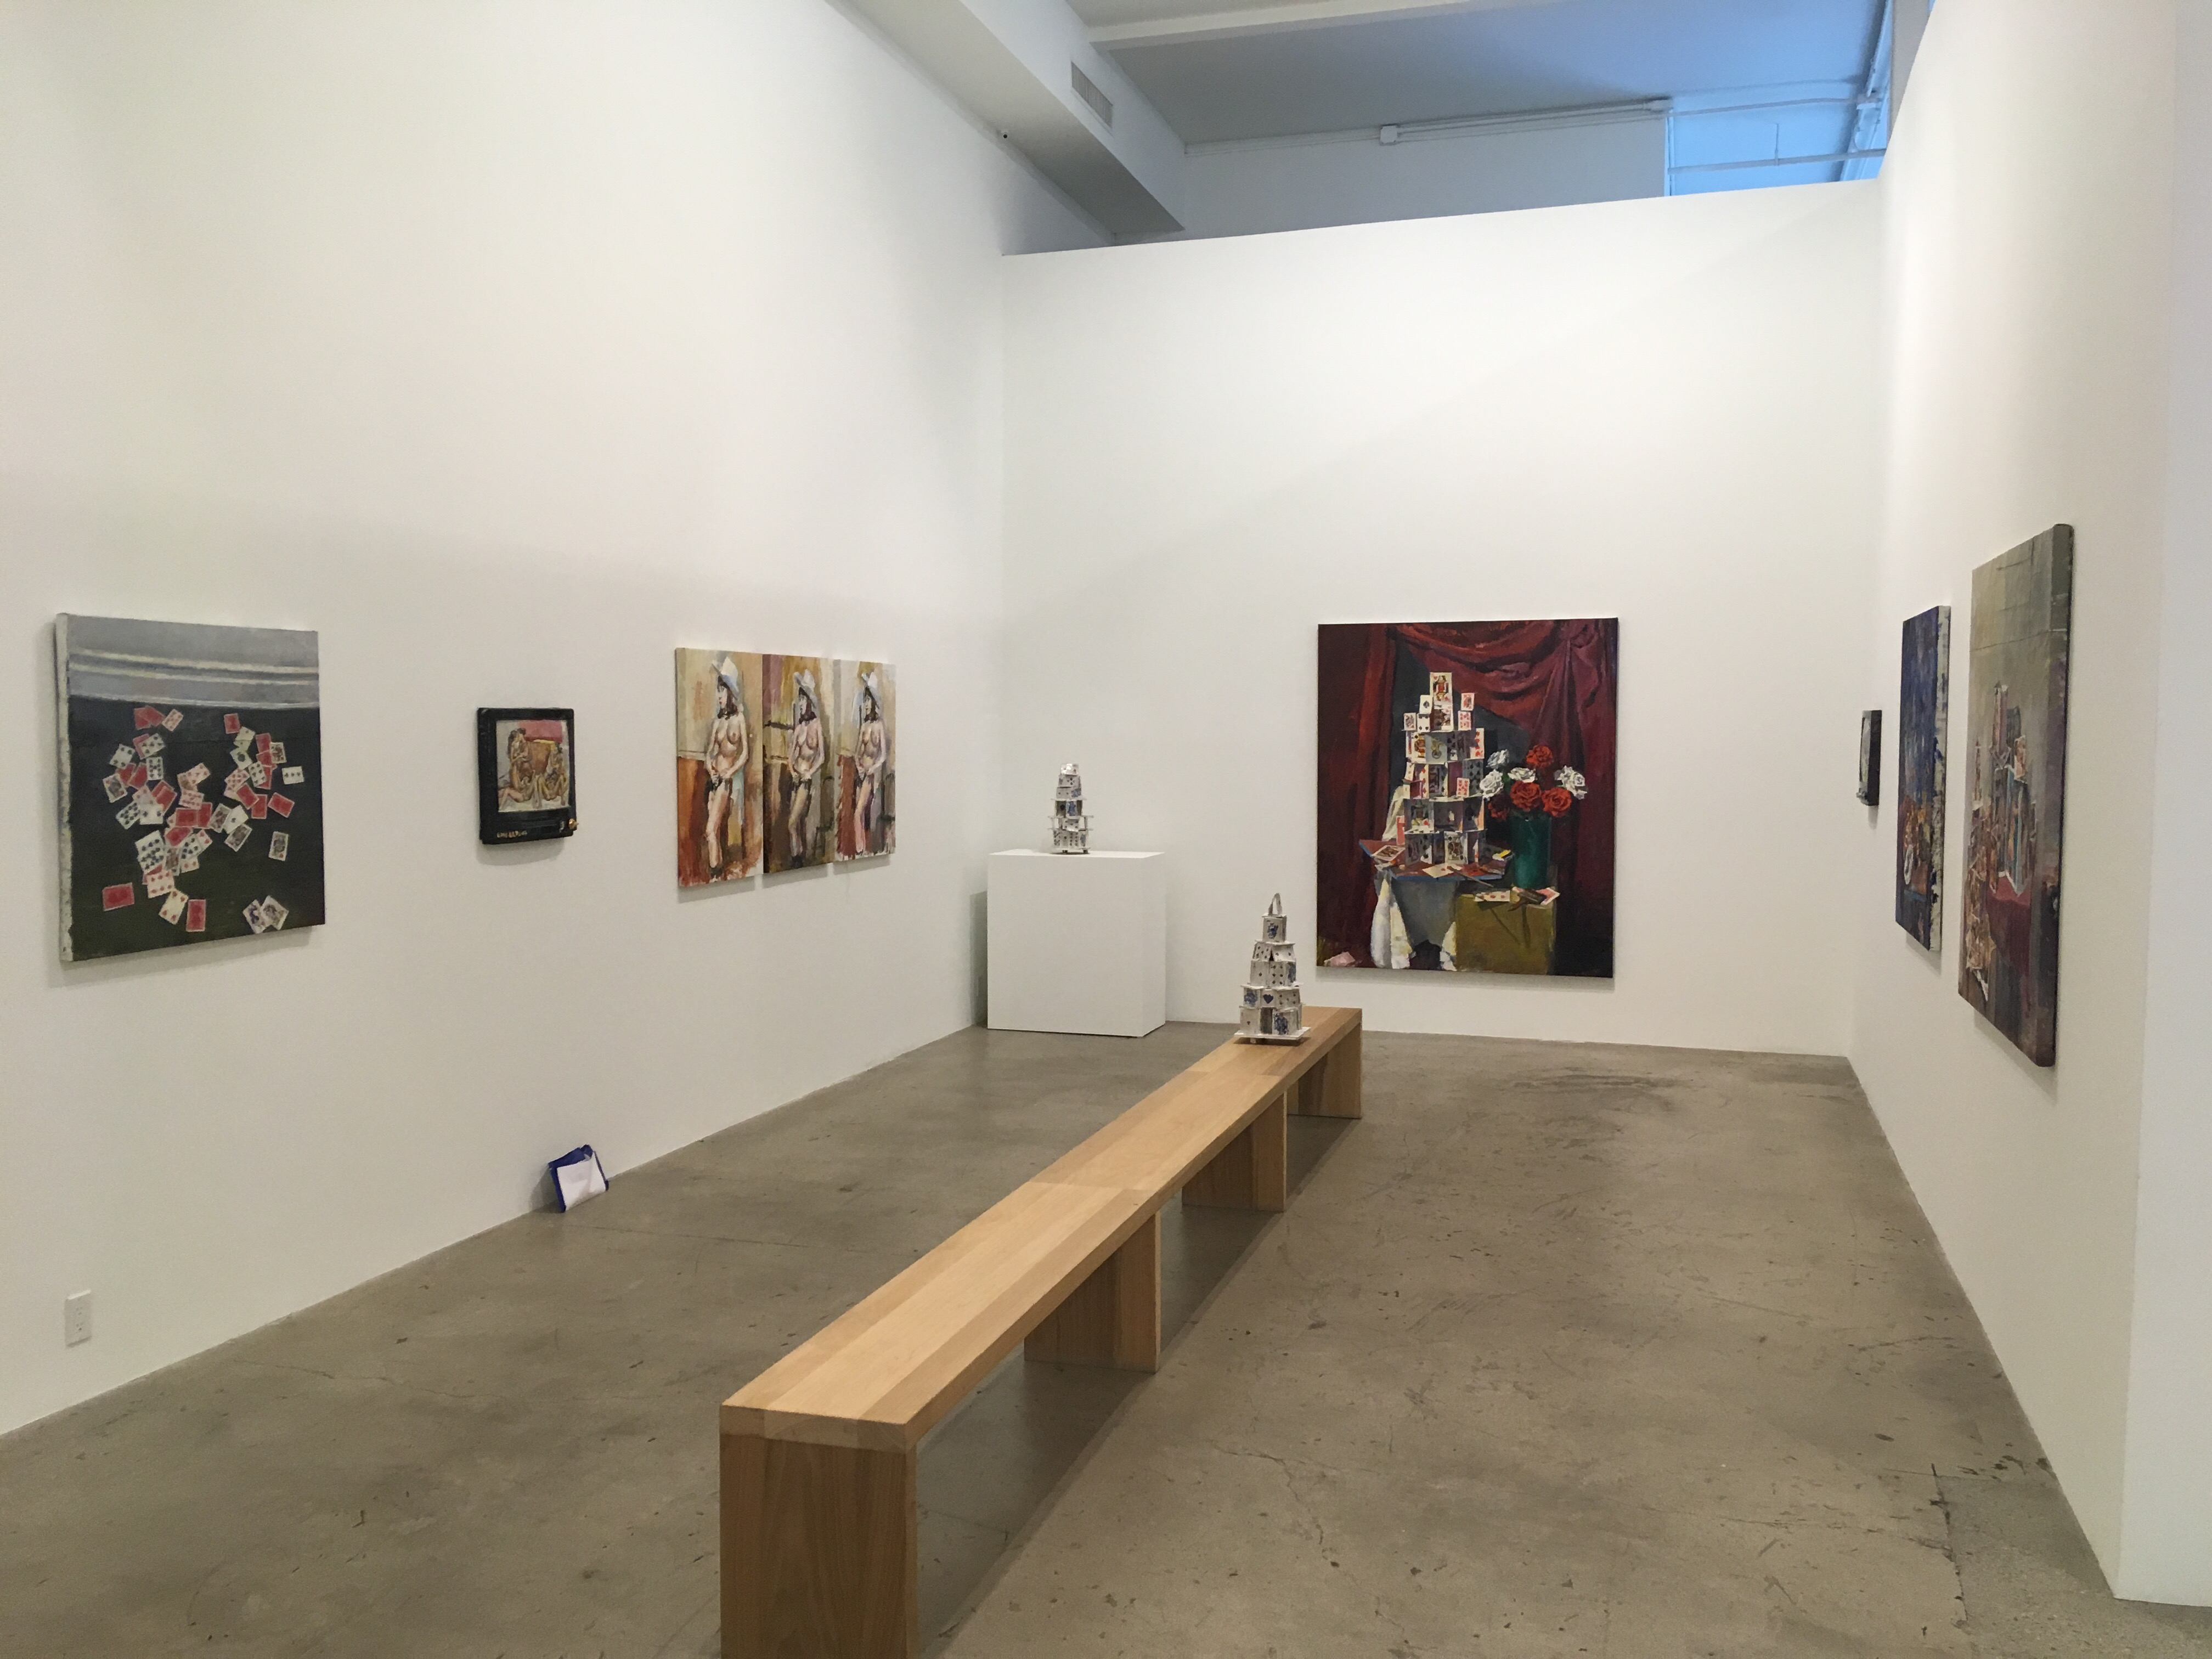 Jesse Edwards exhibition of his art at Diane Rosenstein gallery, contemporary art in Los Angeles